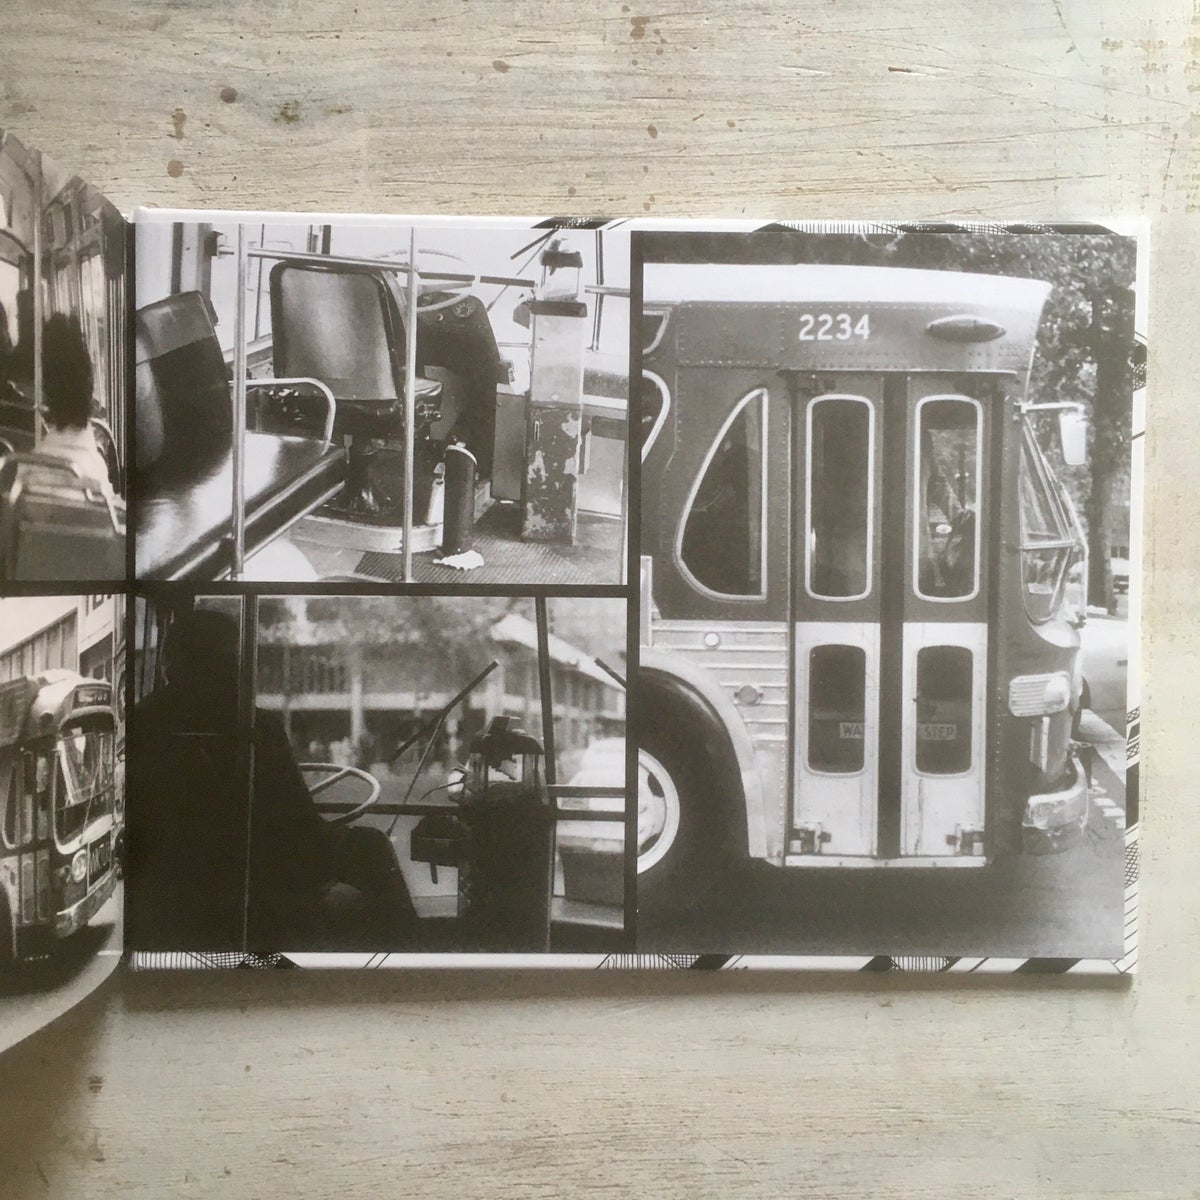 THE BUS 2 (Eng Ed) - Editions Tanibis